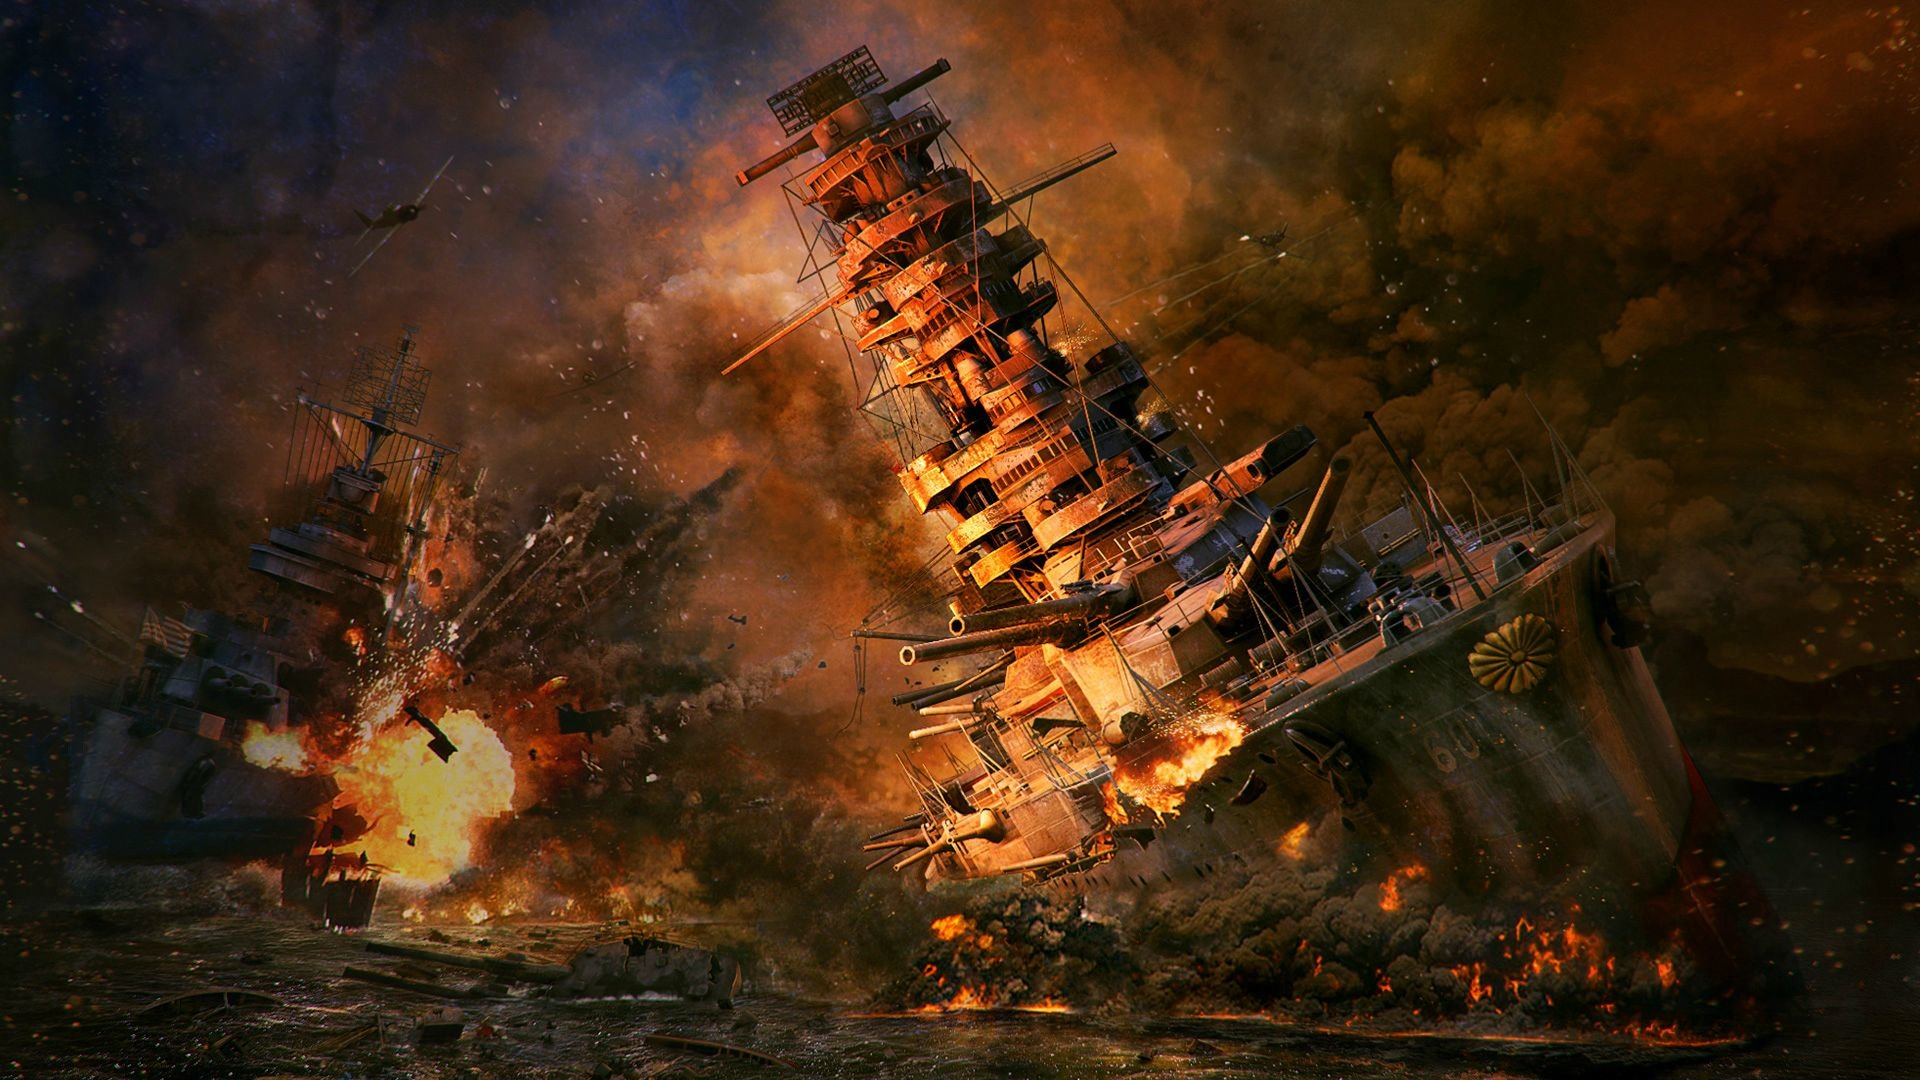 World Of Warships Wallpapers 1920x1080 Full Hd 1080p Desktop